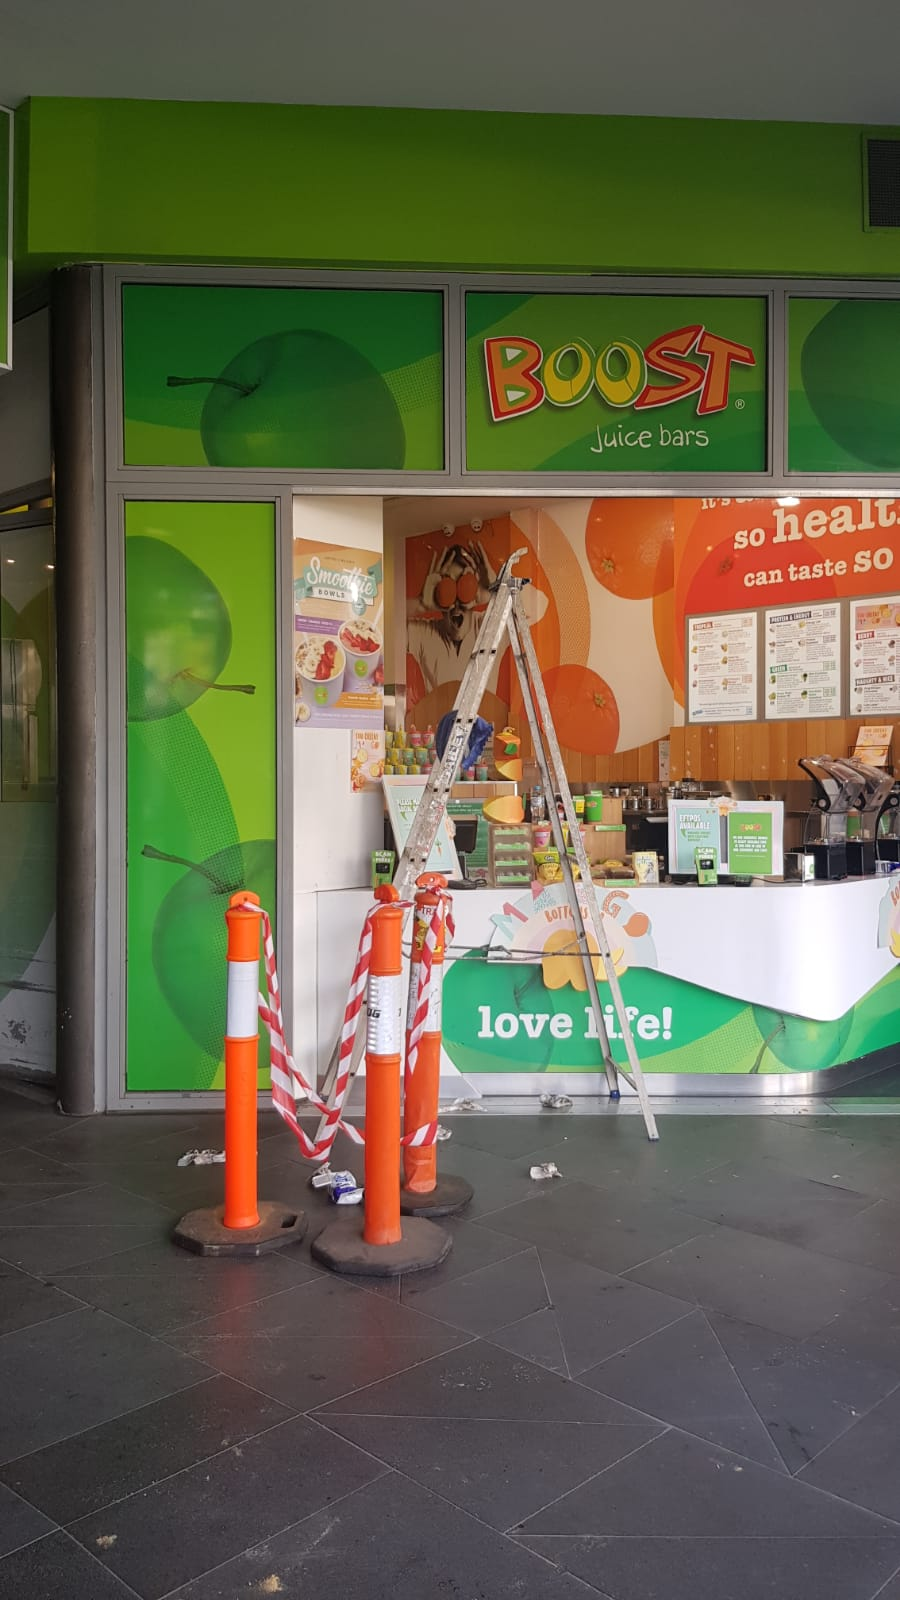 Boost Juice, Pressure wash cleaning, Chapel st Prahan